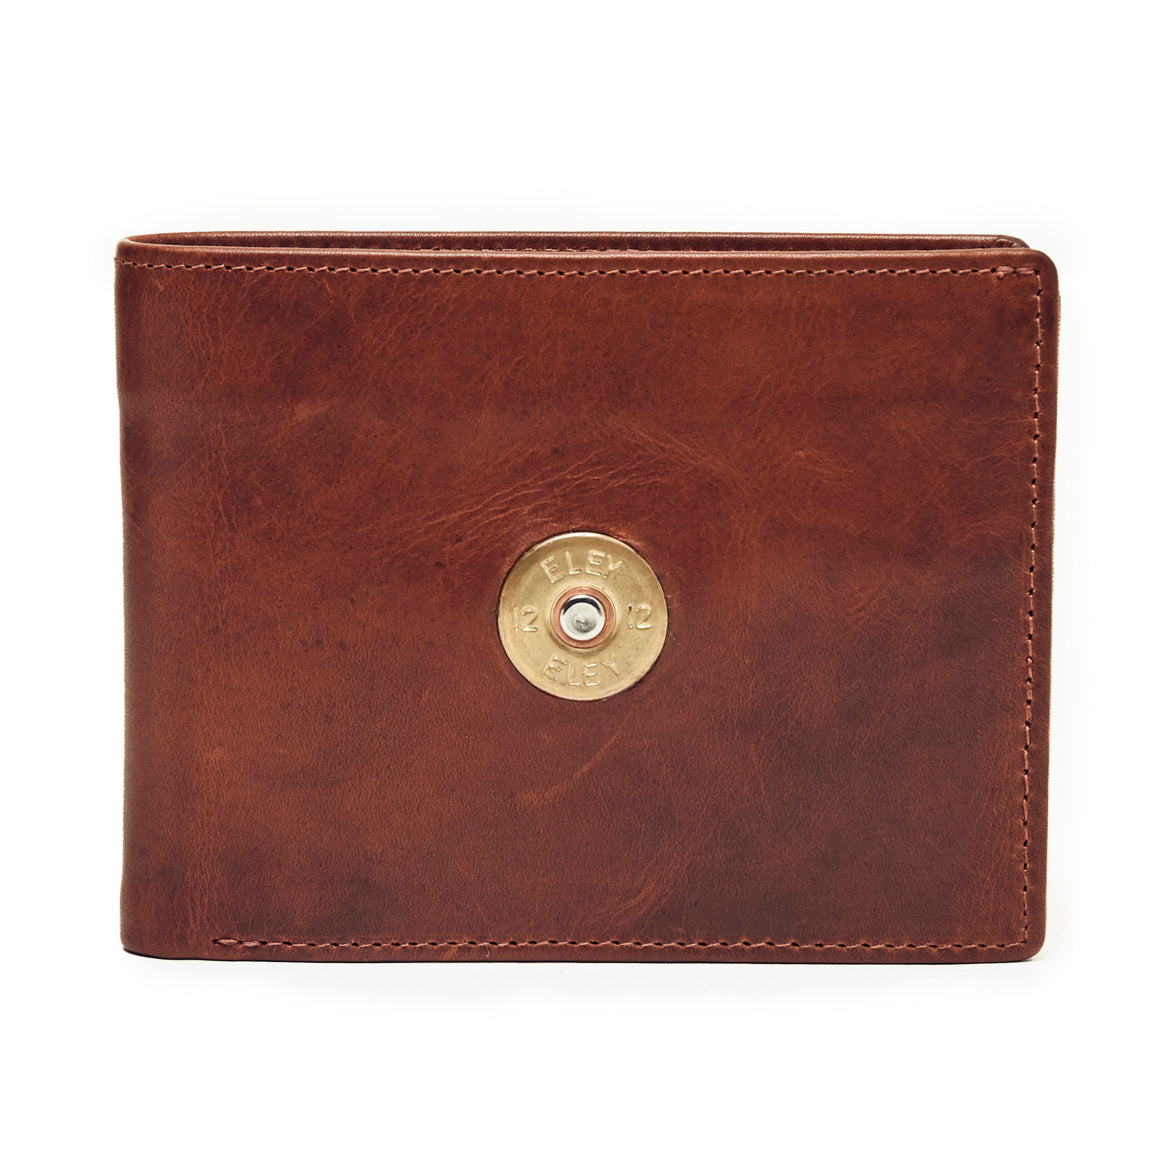 Hicks & Hide 12bore Wallet Cognac Leather